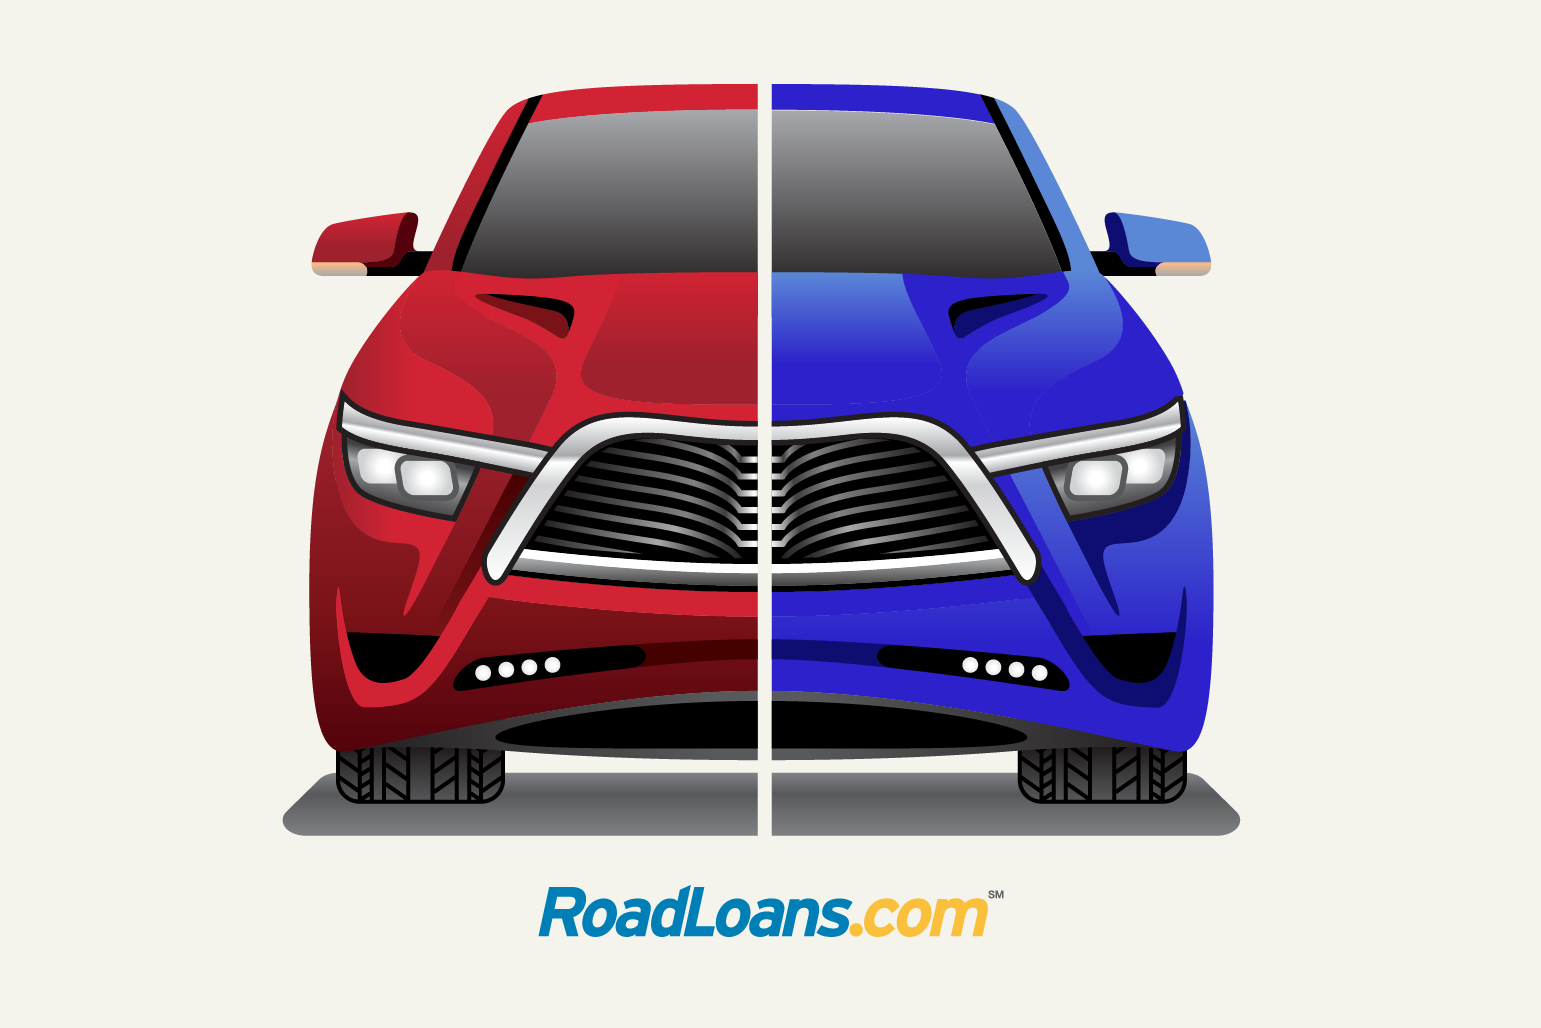 New car loan vs. Used car loan